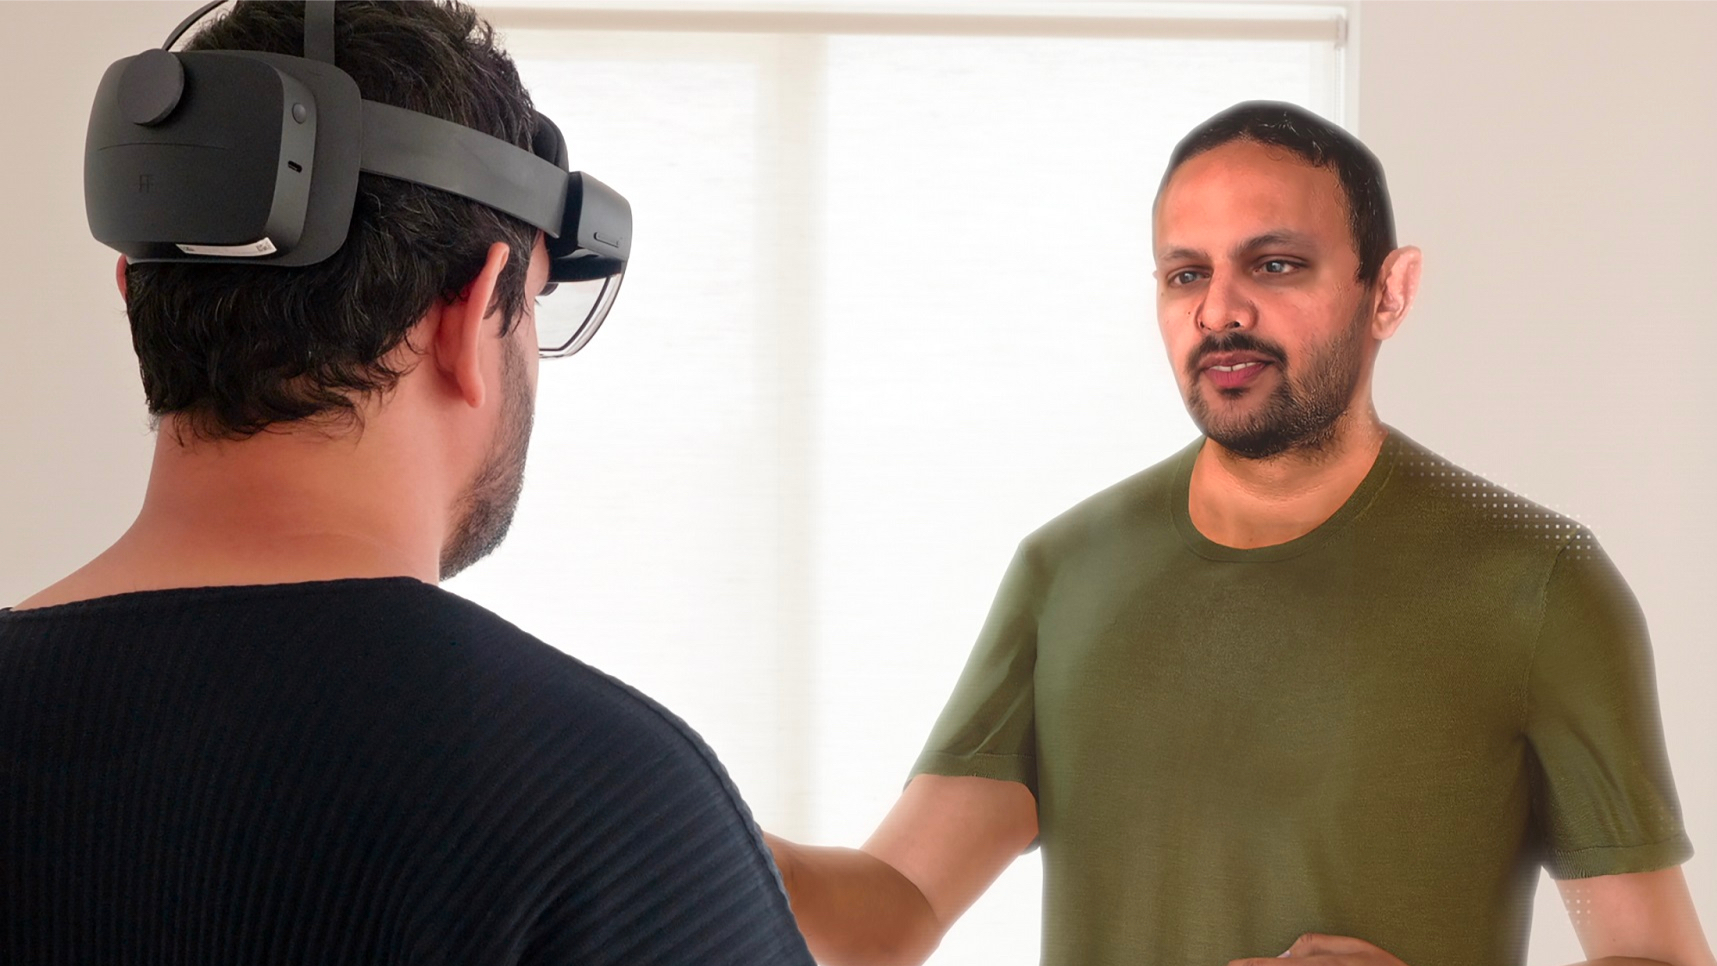 Moin in VR headset interacting with Moin Avatar